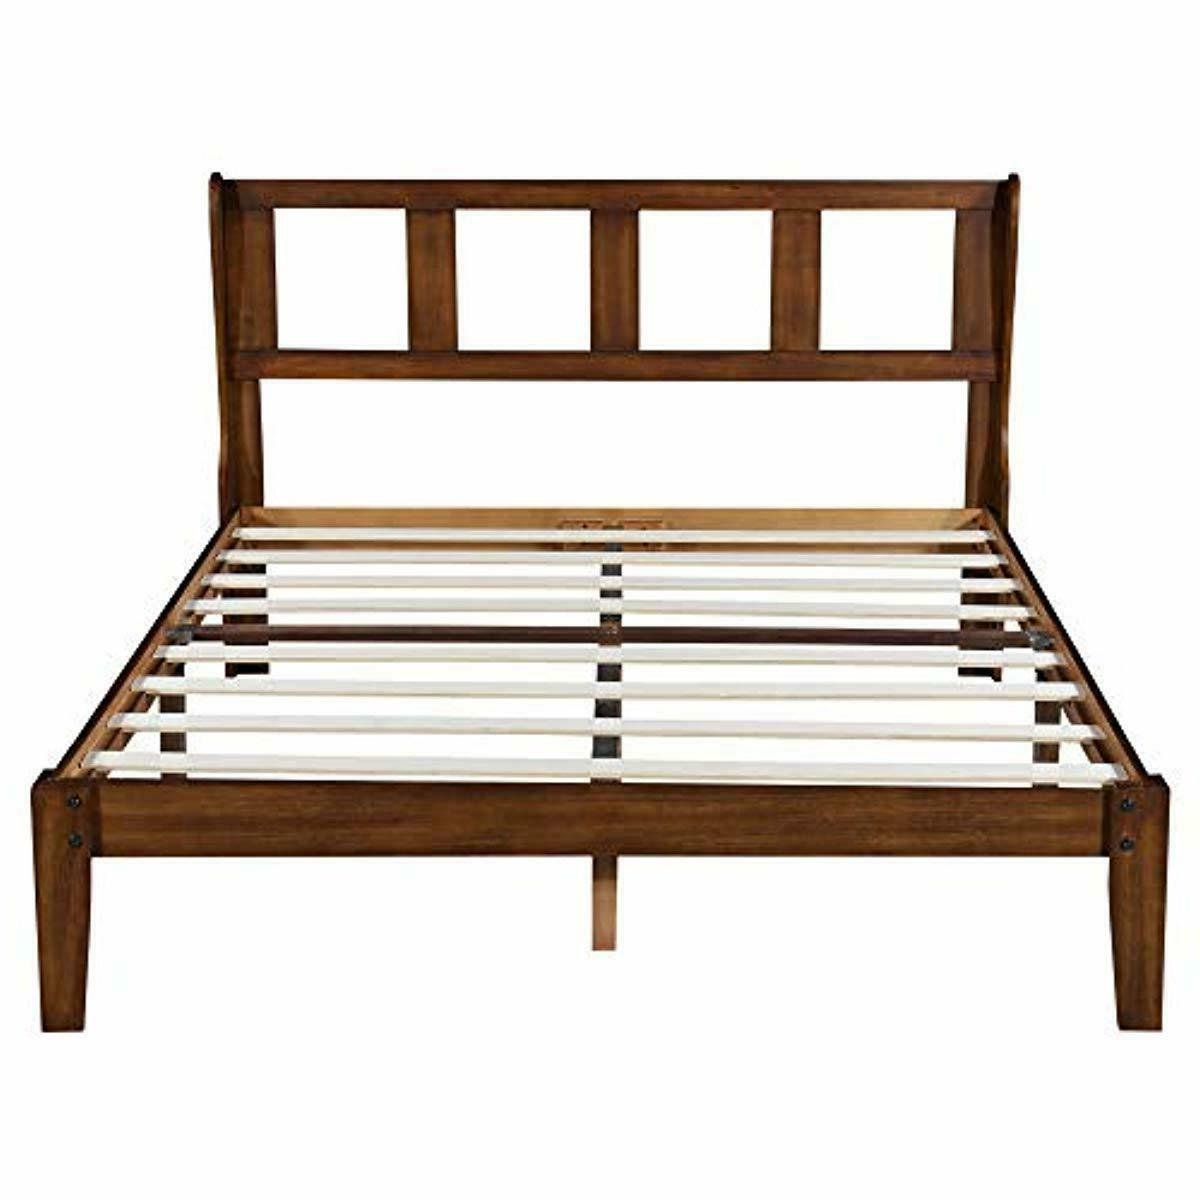 Olee Inch Deluxe Bed with Full